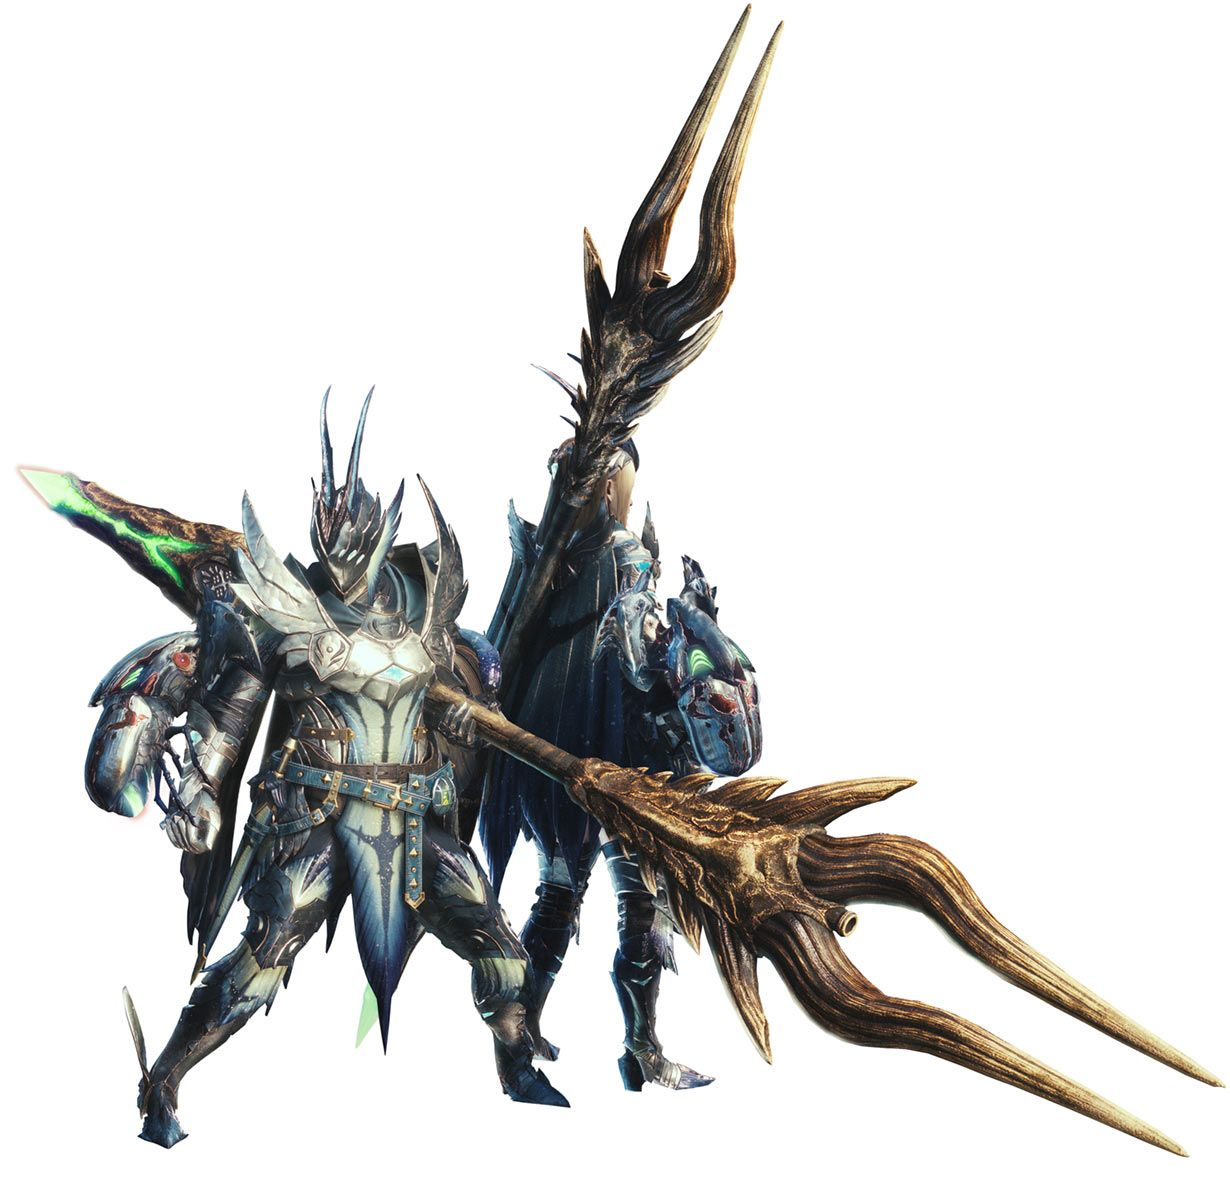 The Best Co-Op C-Tier Weapons insect glaive